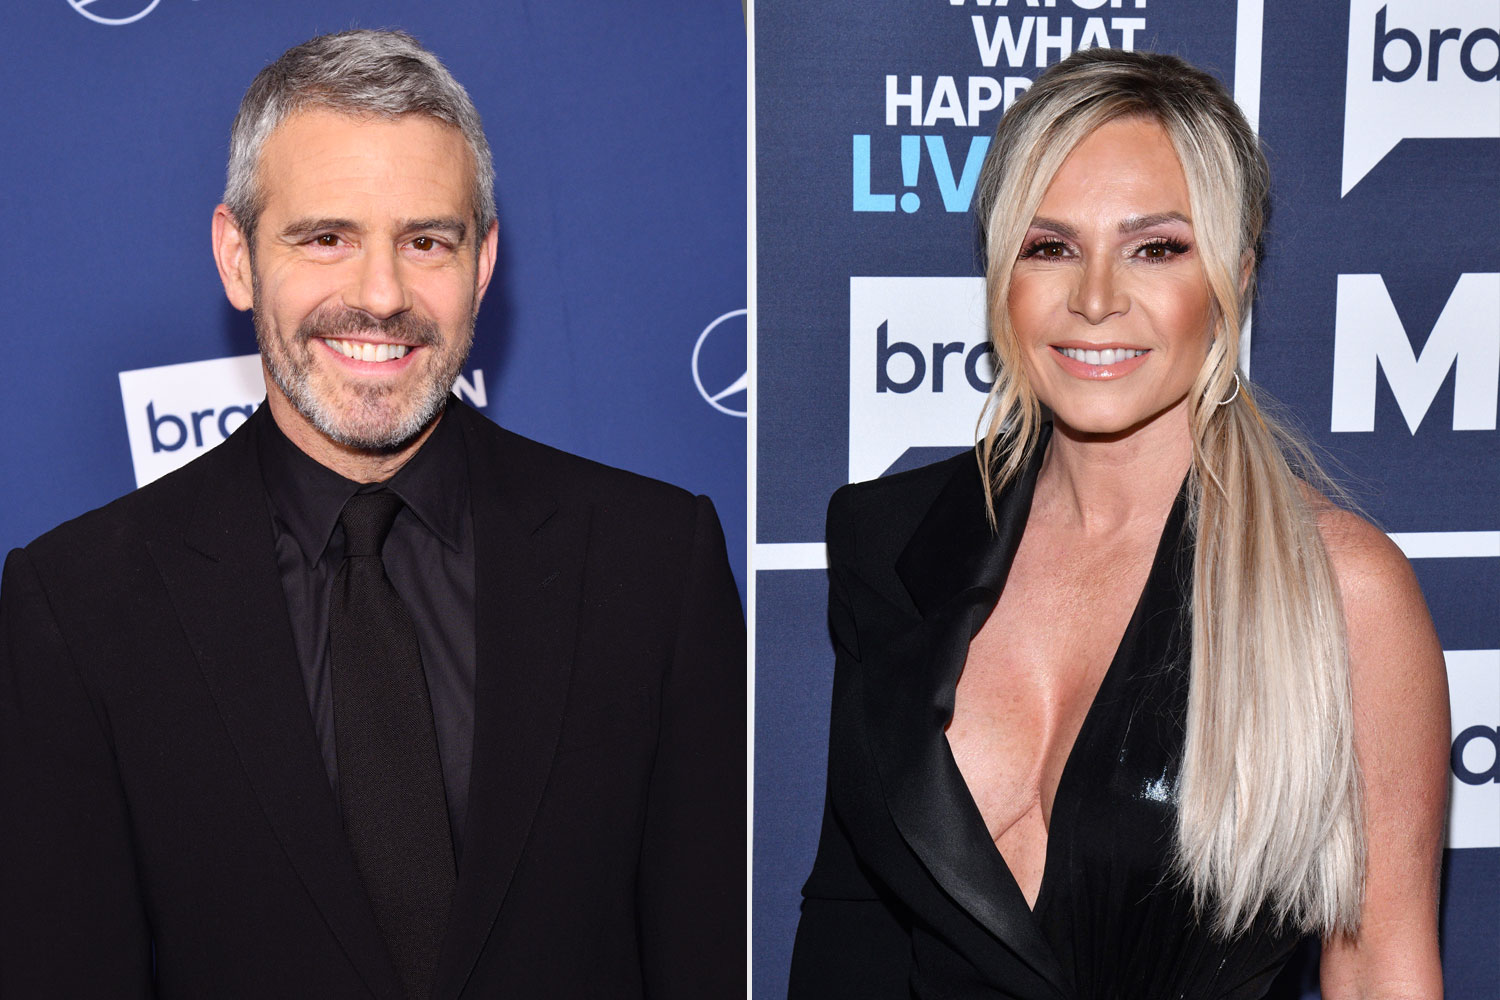 Andy Cohen and Tamra Judge